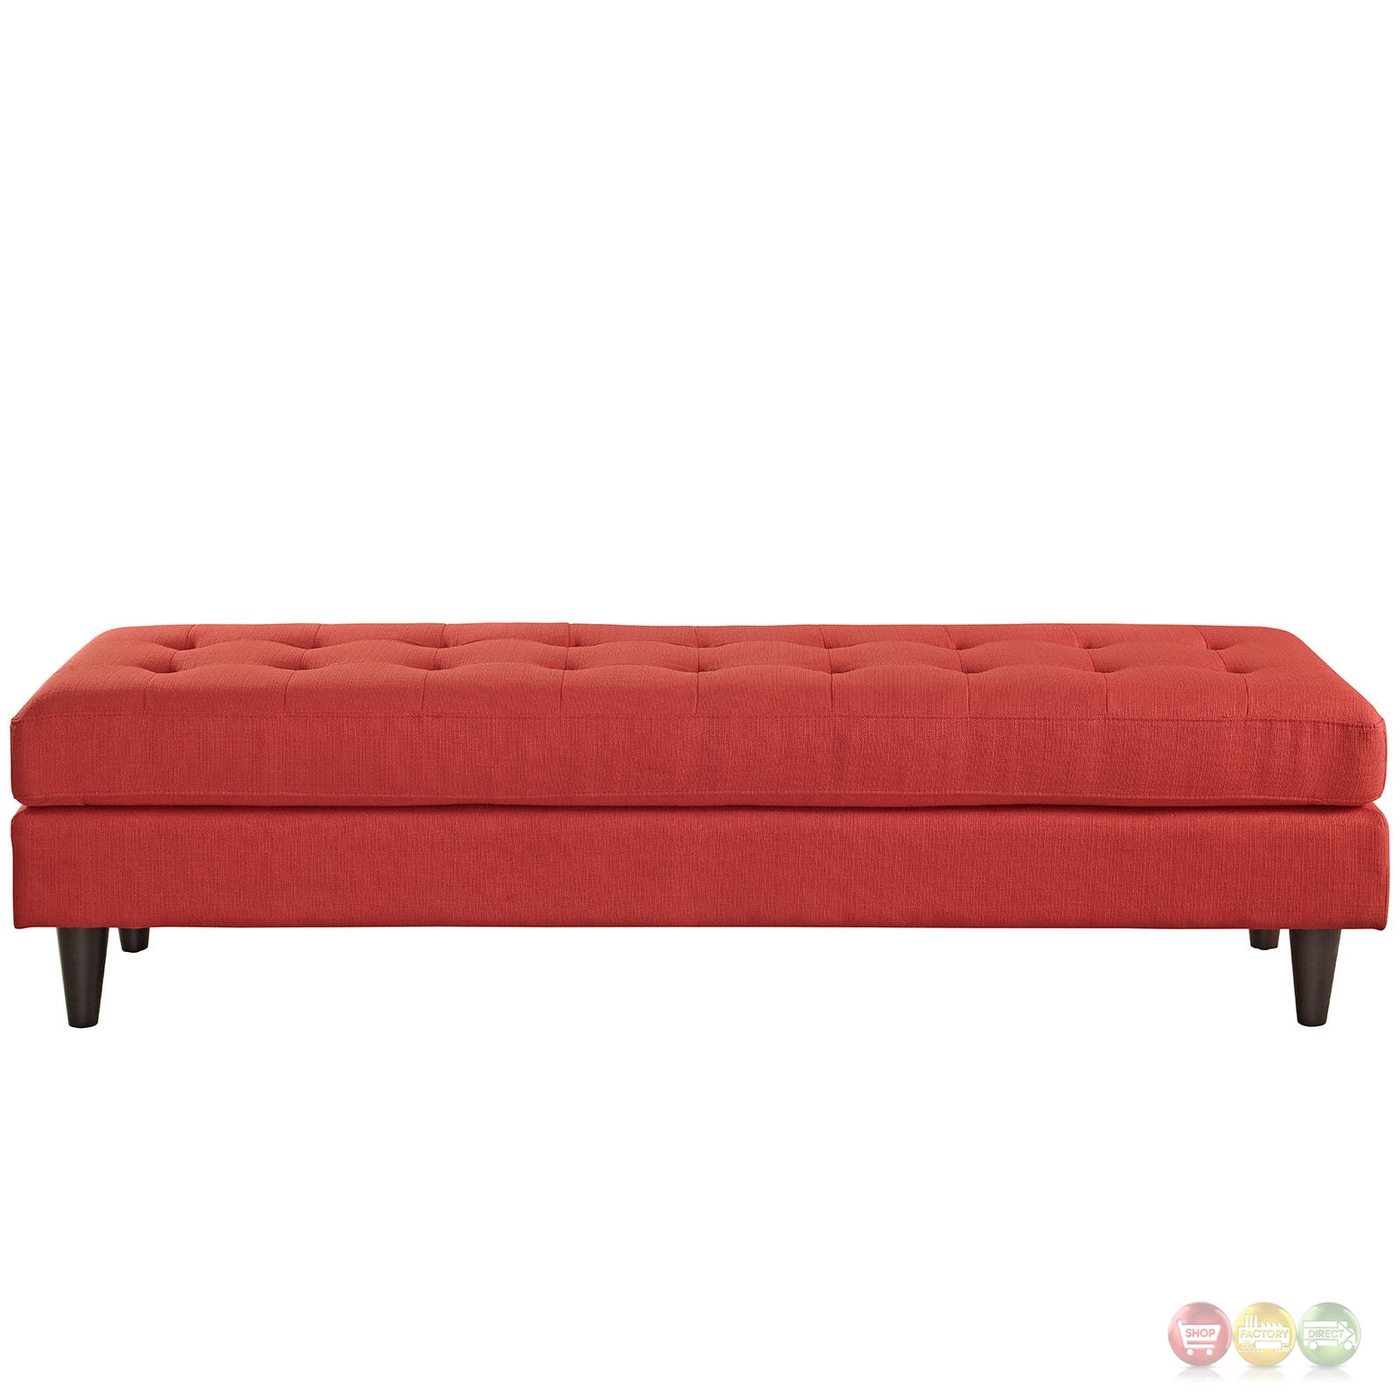 Empress Mid Century Modern Bench With Button Tufted Upholstery Atomic Red